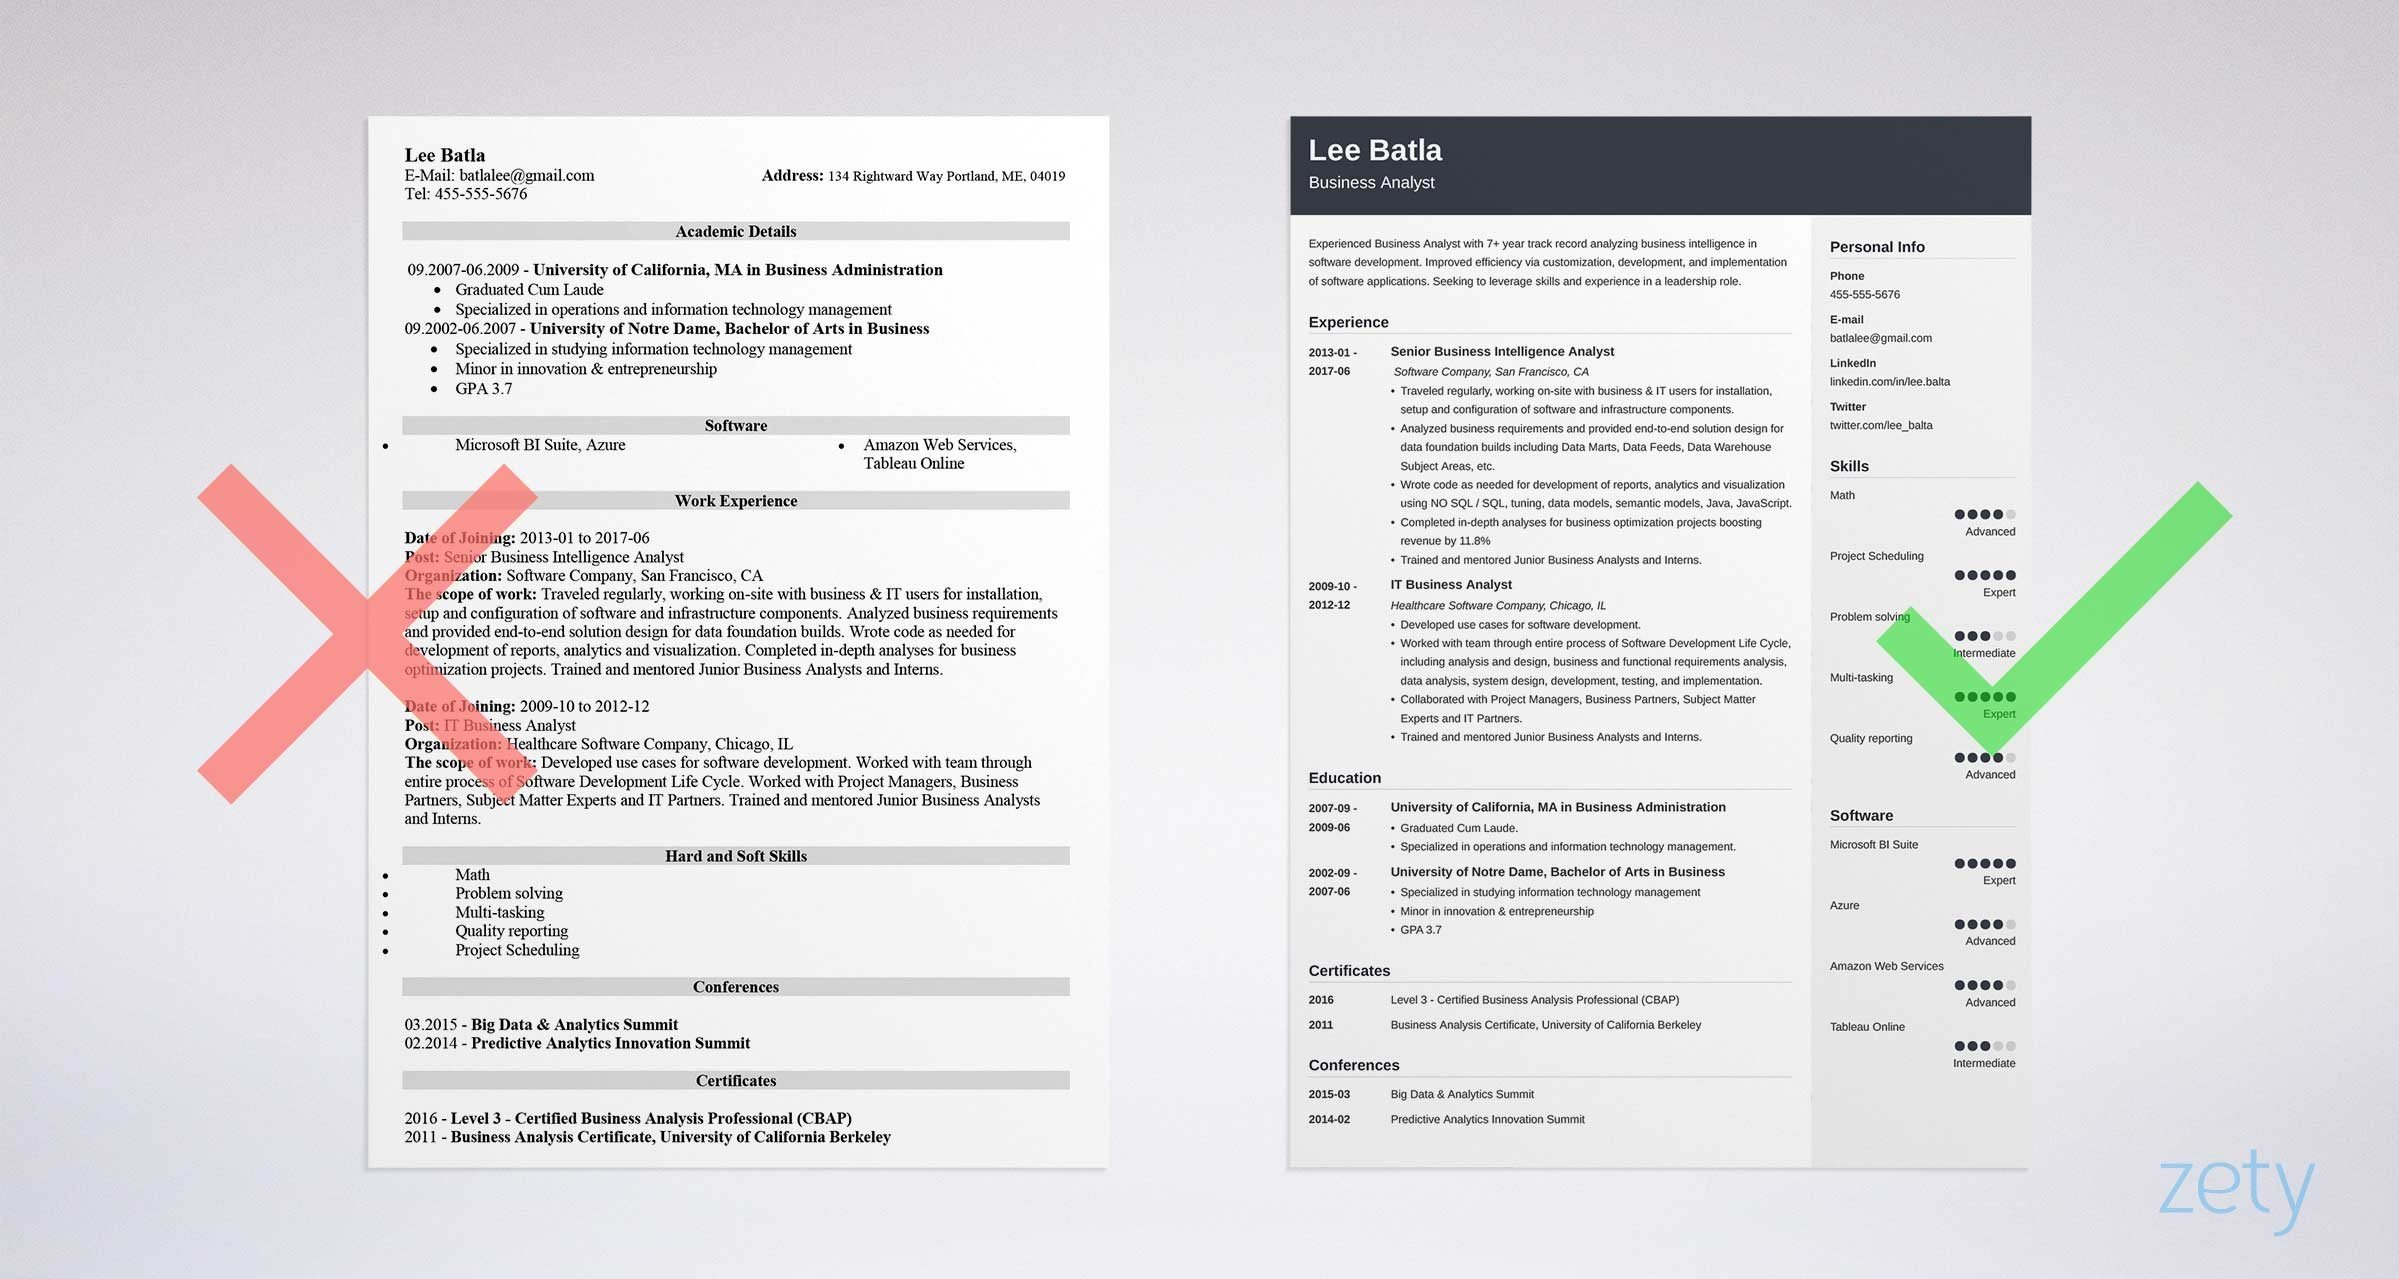 450 Job Titles for Professional Positions [Current & Desired]